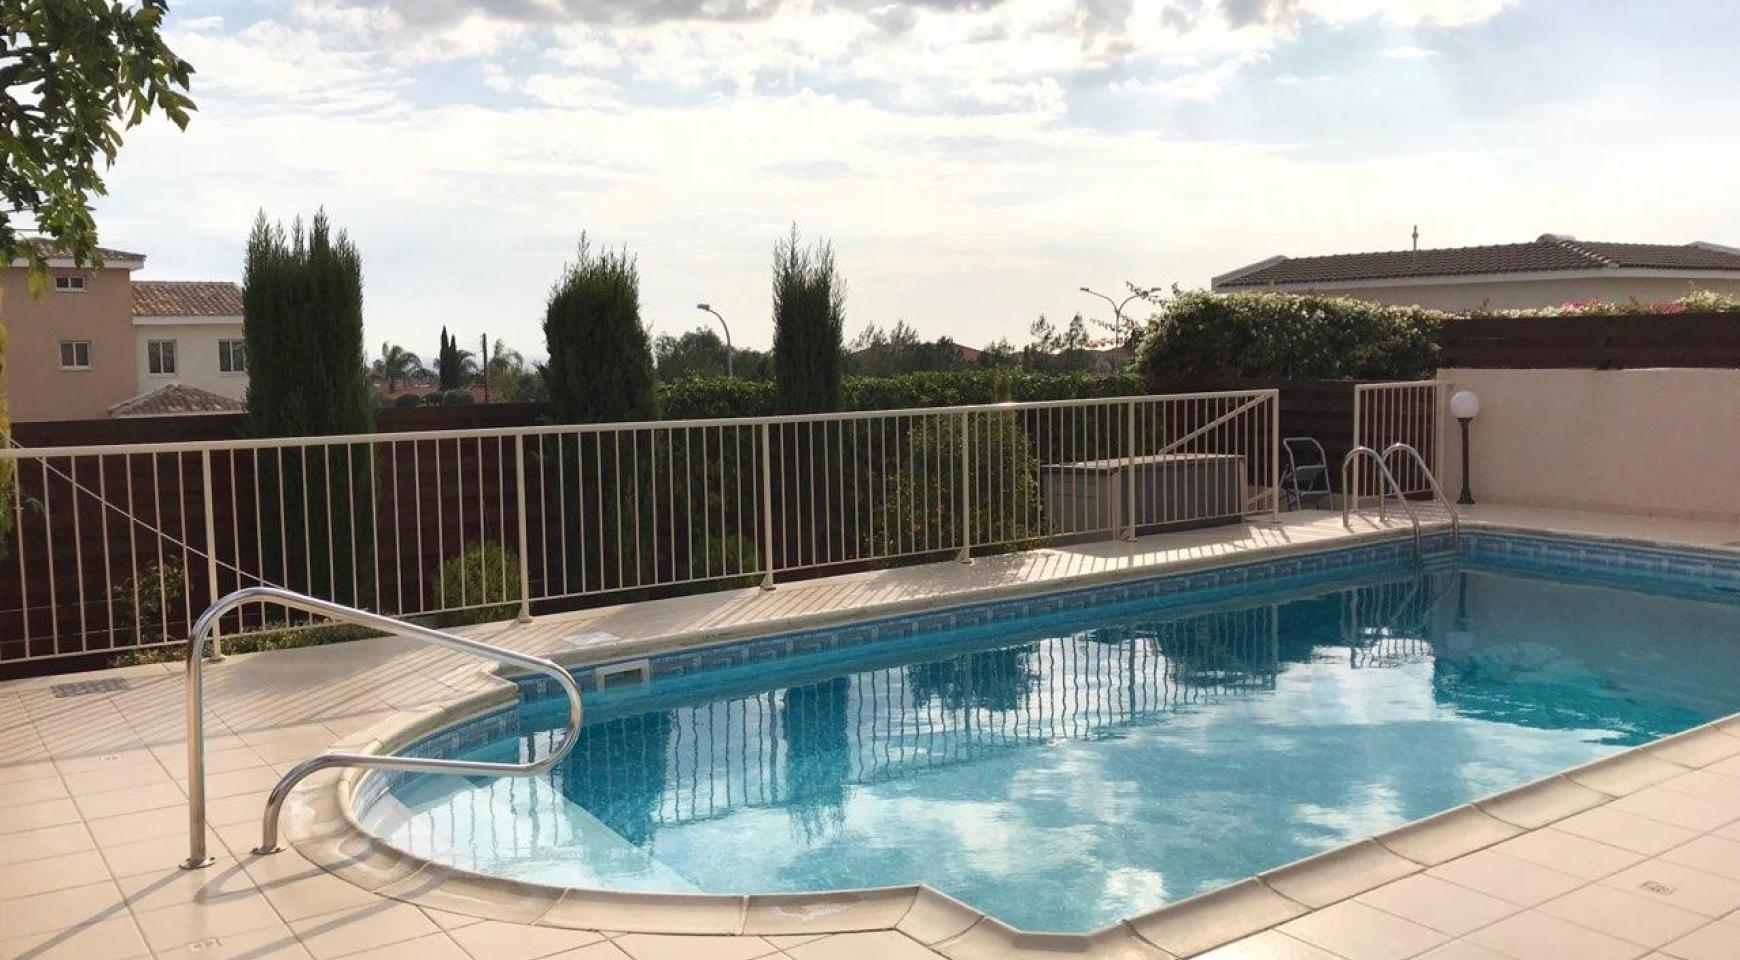 3 Bedroom Semi-Detached House with the Swimming Pool in Erimi Village - 9